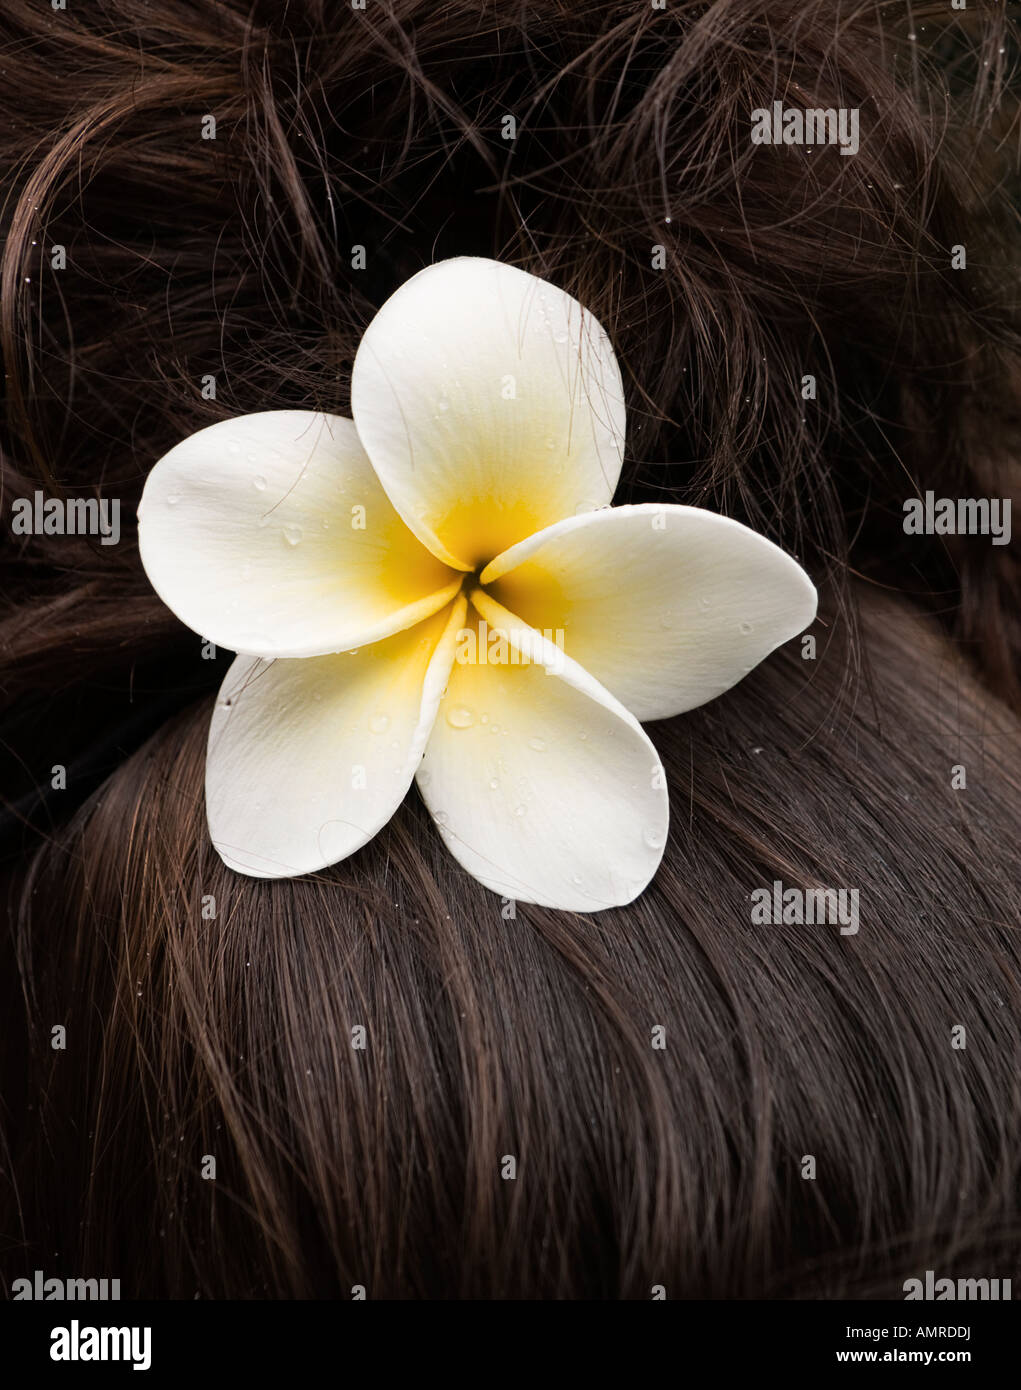 White hawaiian flower in womans hair stock photo 15323885 alamy white hawaiian flower in womans hair izmirmasajfo